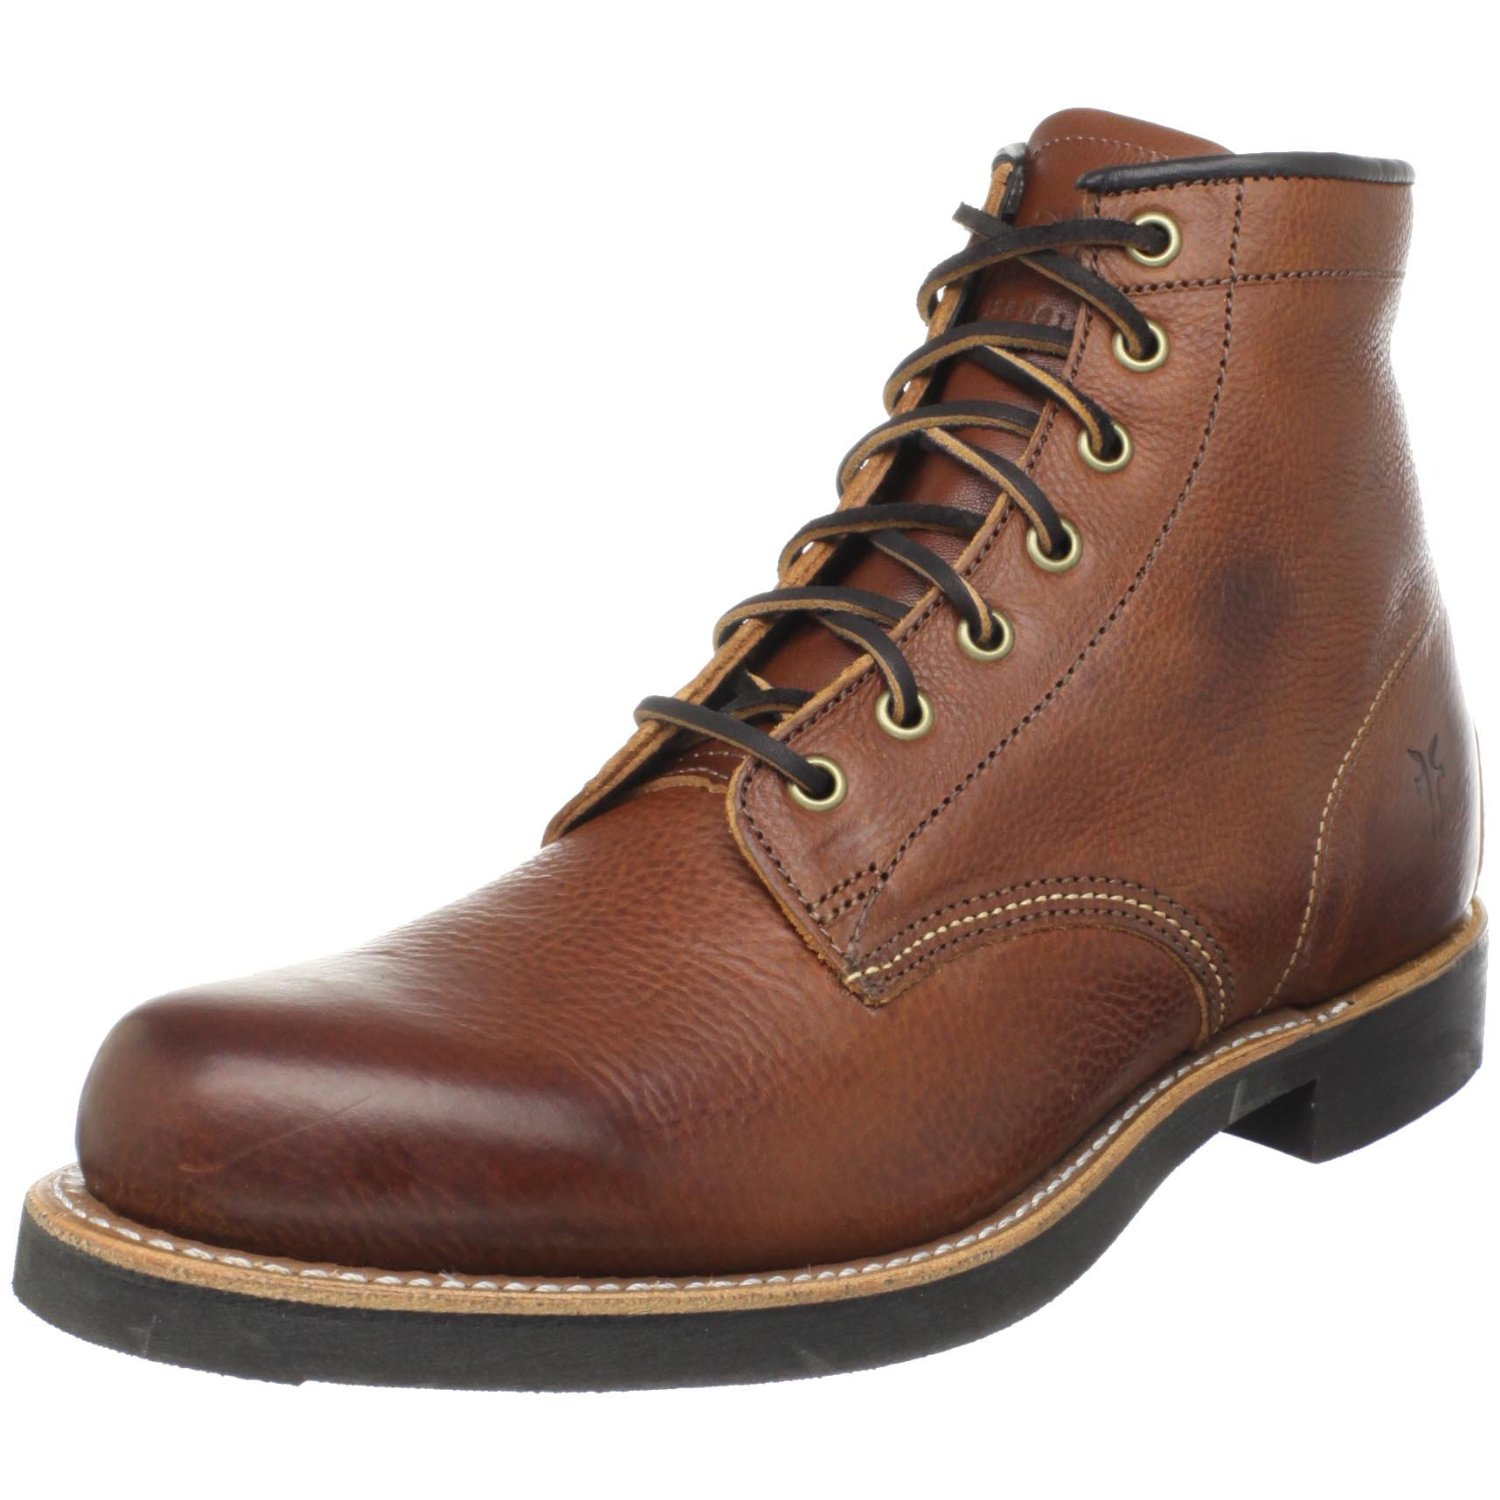 Hudson Mens Shoes Sale